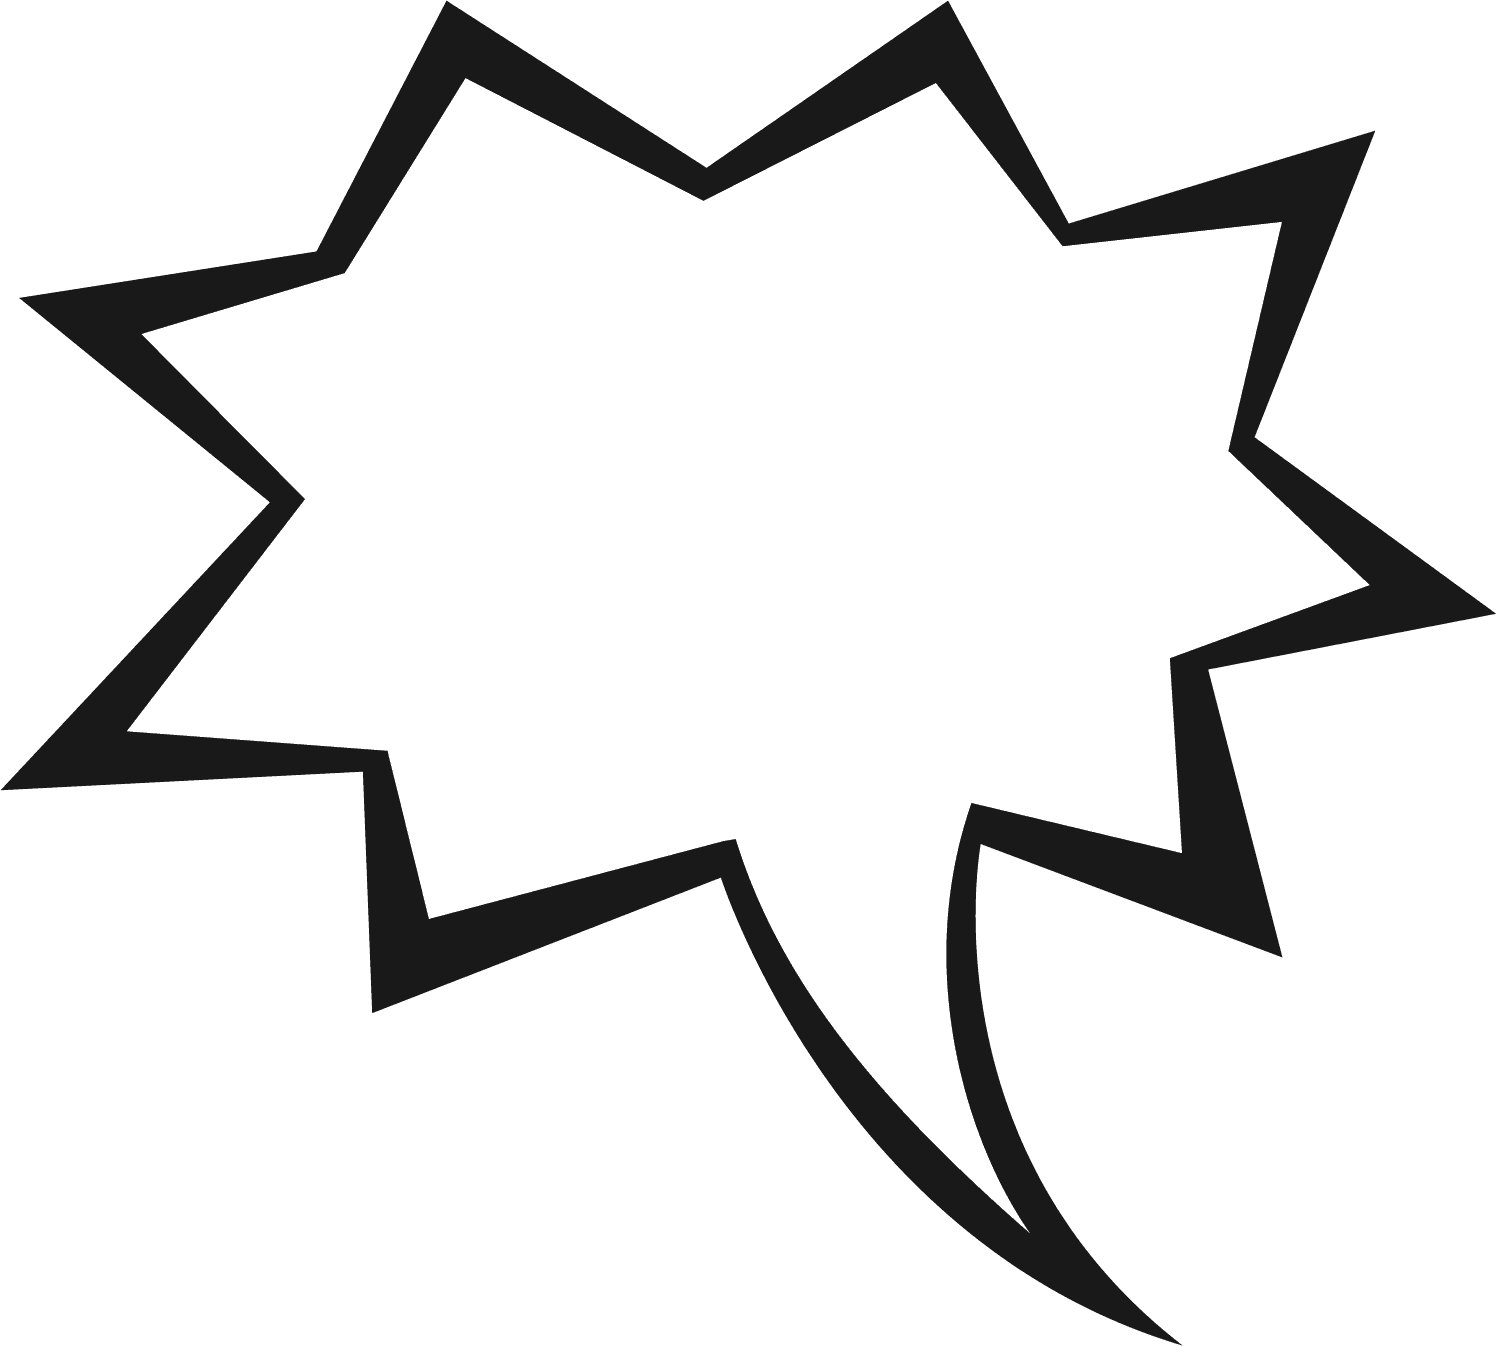 Free Speech Balloon Png, Download Free Clip Art, Free Clip